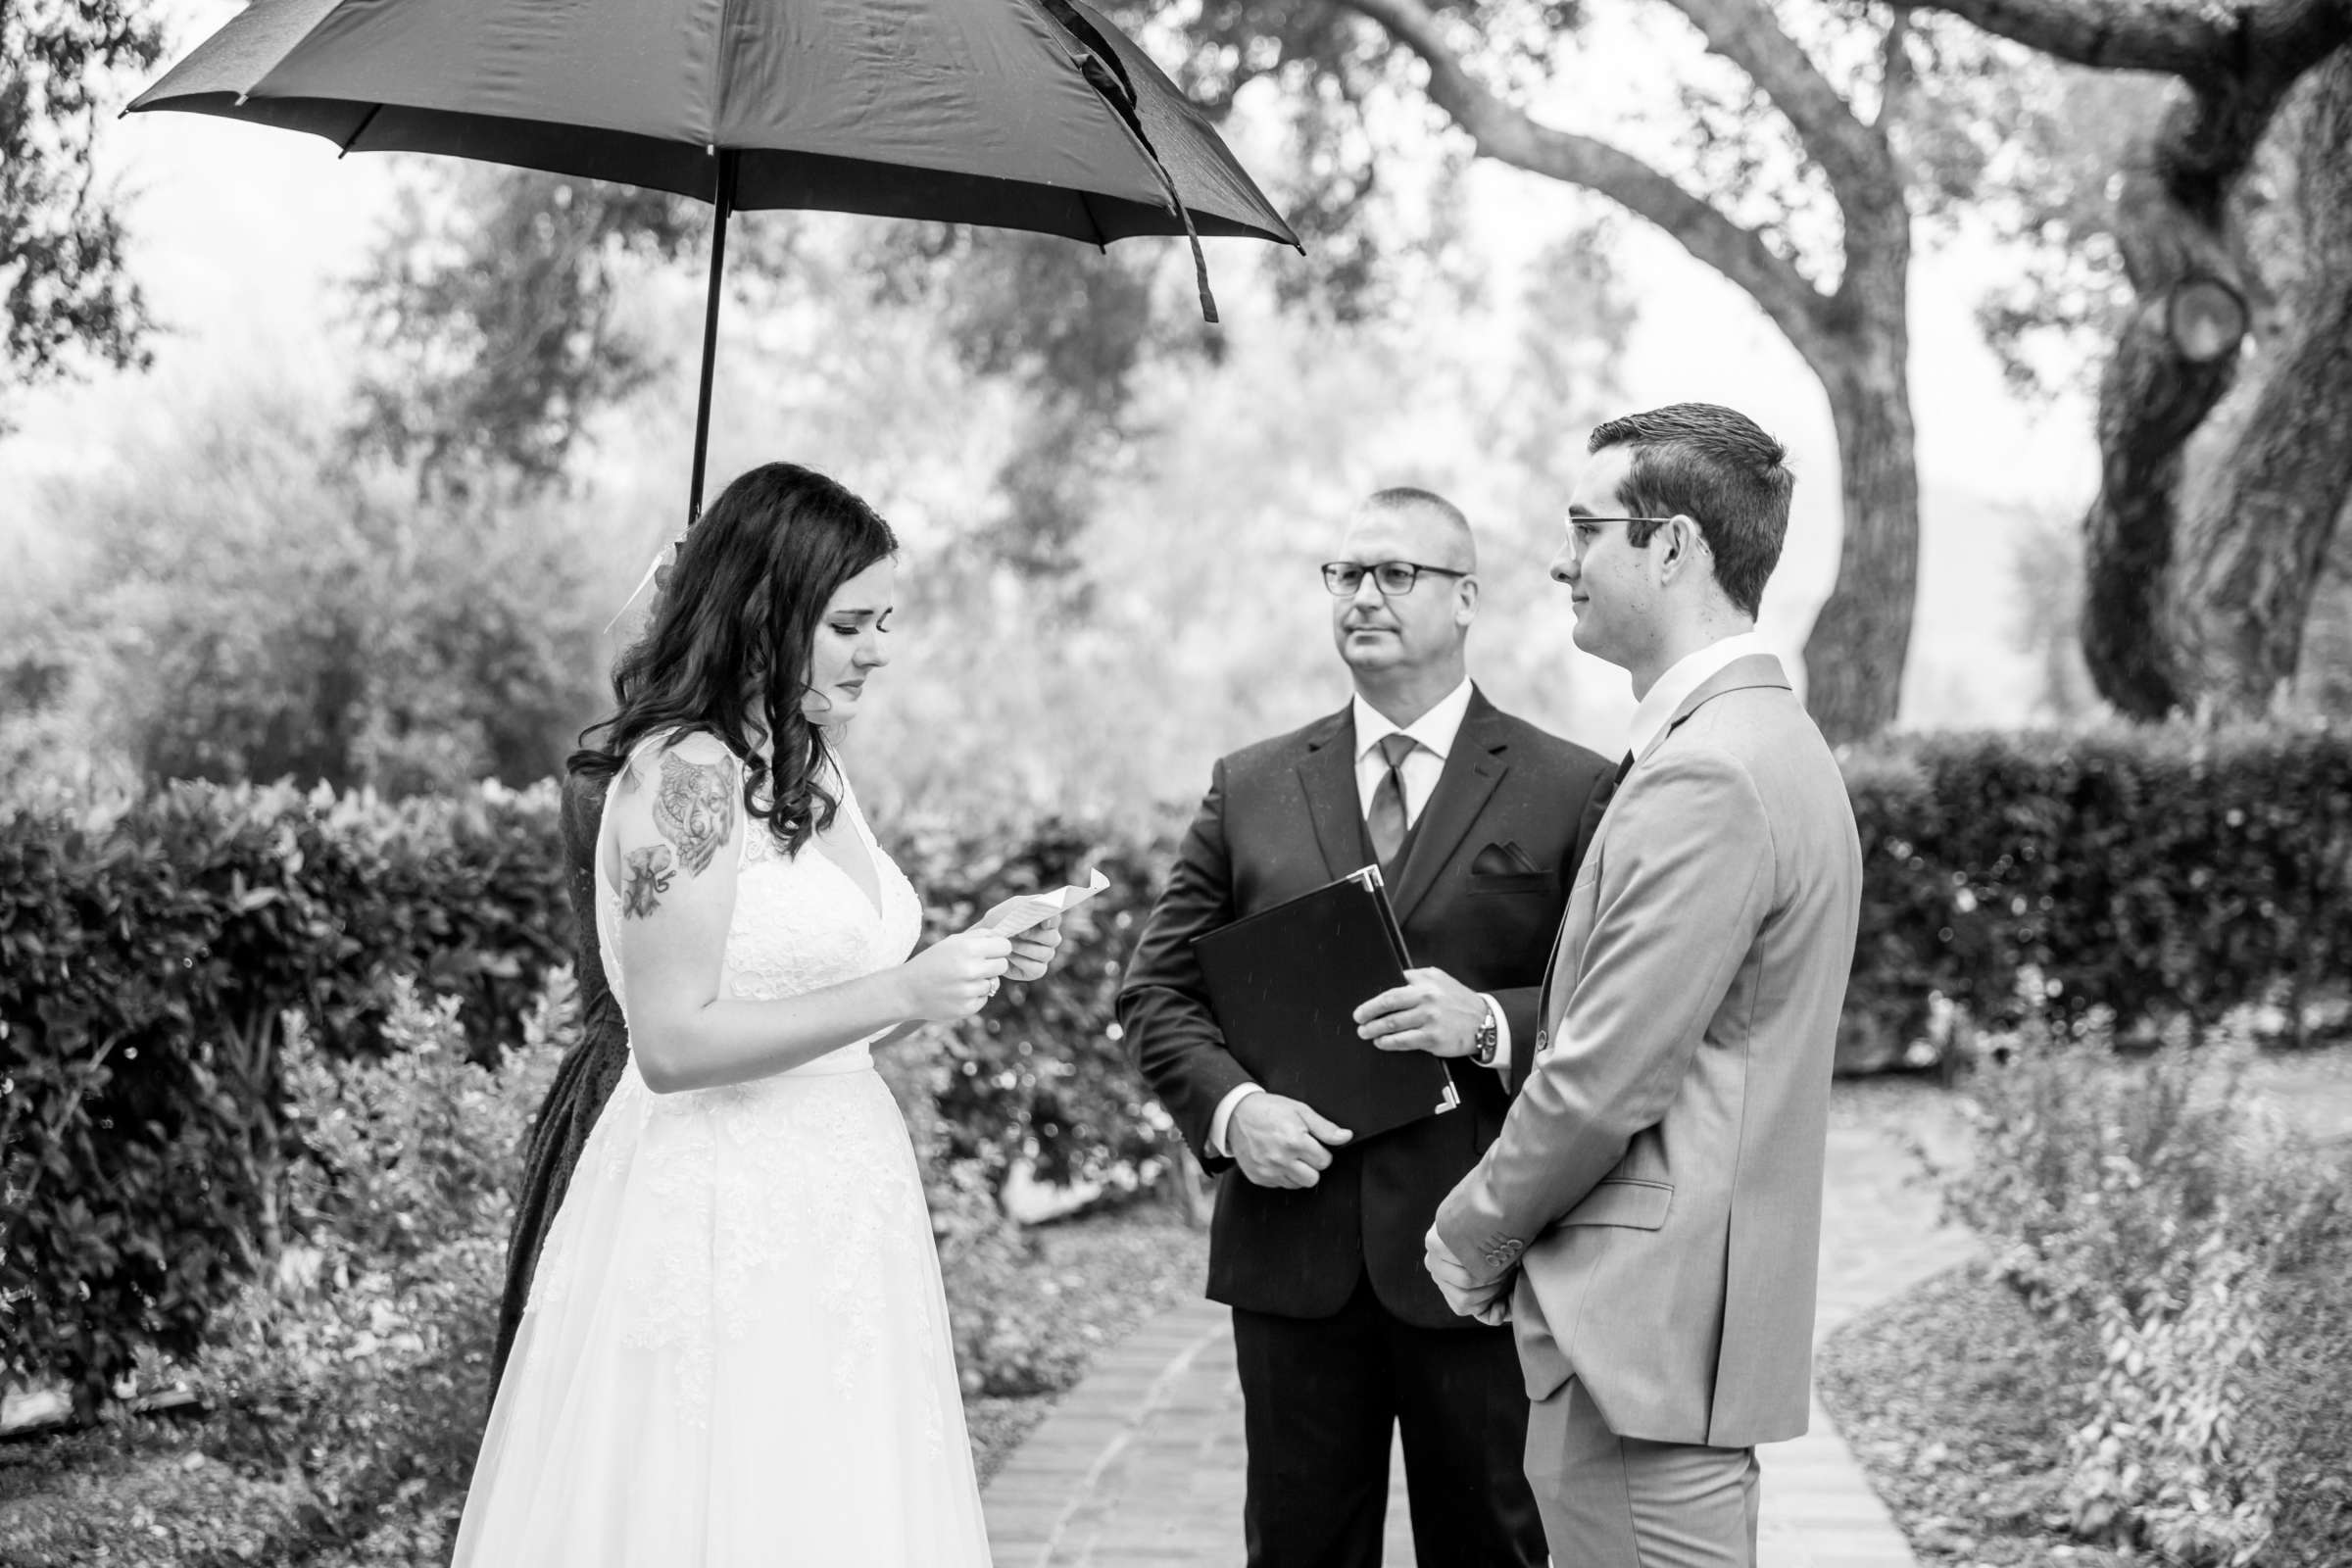 Mt Woodson Castle Wedding, Valerie and Ian Wedding Photo #69 by True Photography